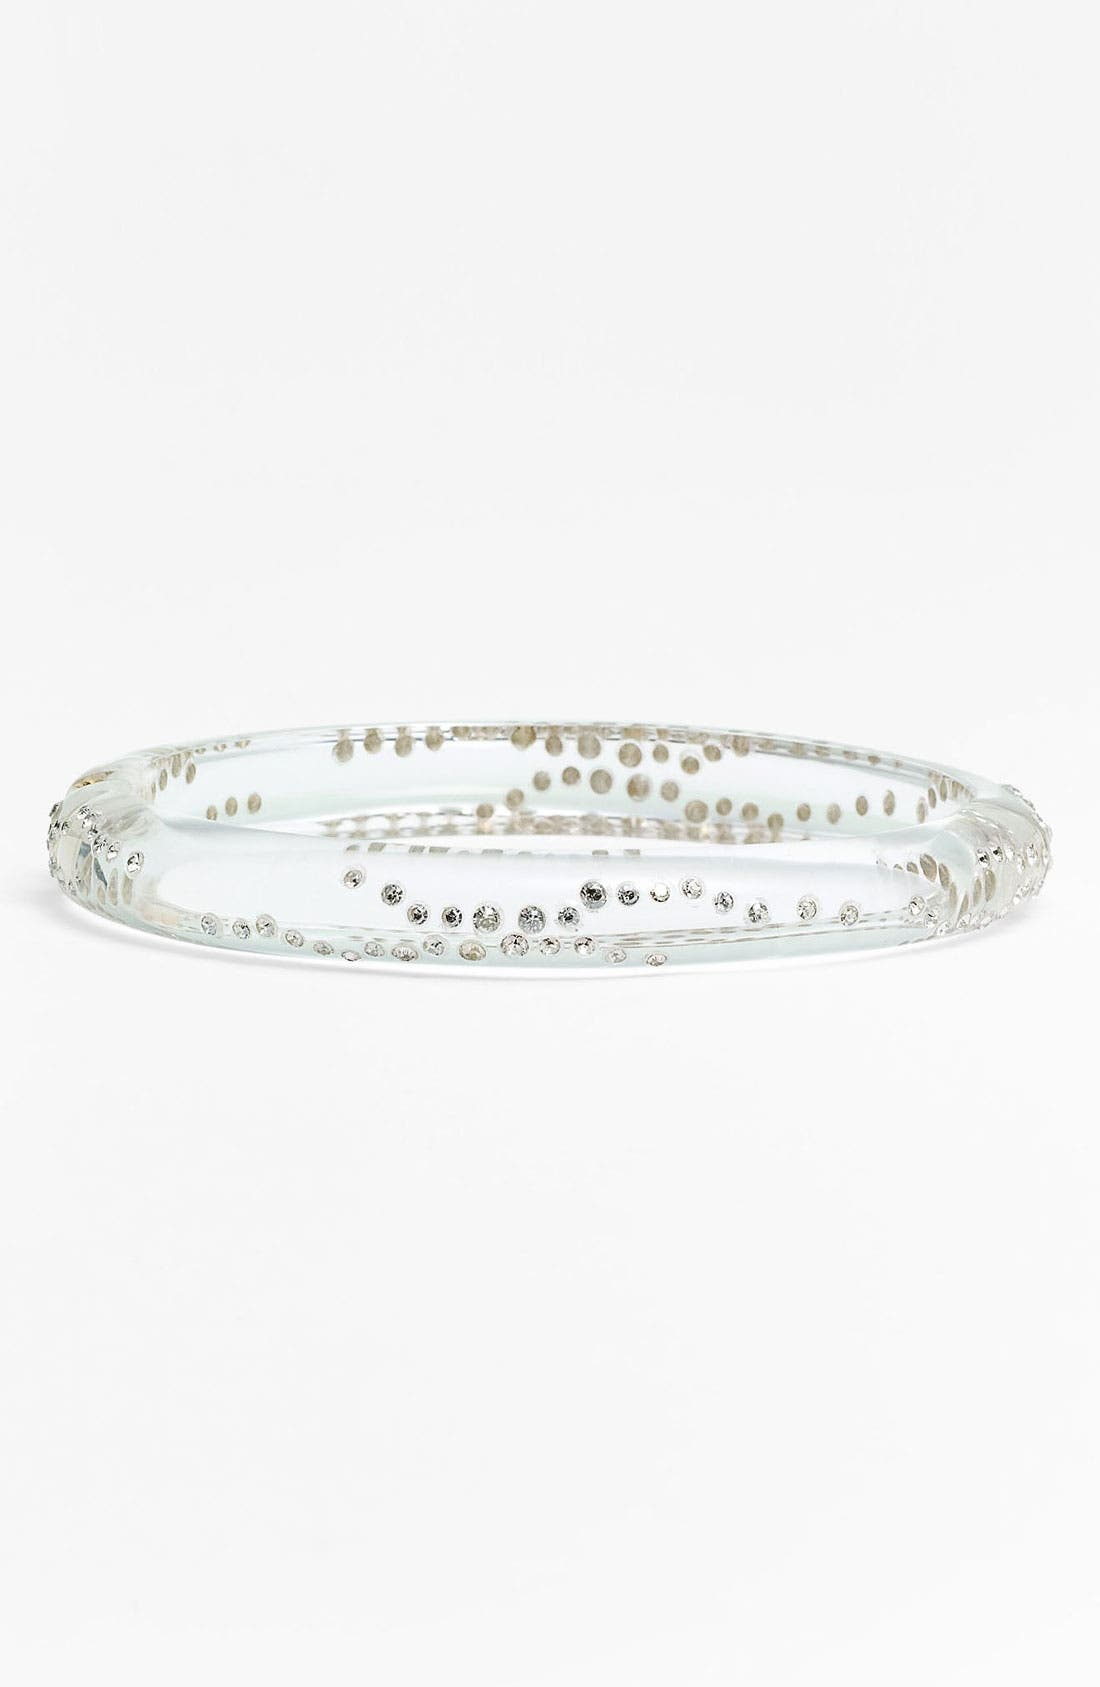 Alternate Image 1 Selected - Alexis Bittar 'Lucite® - Dust' Bracelet